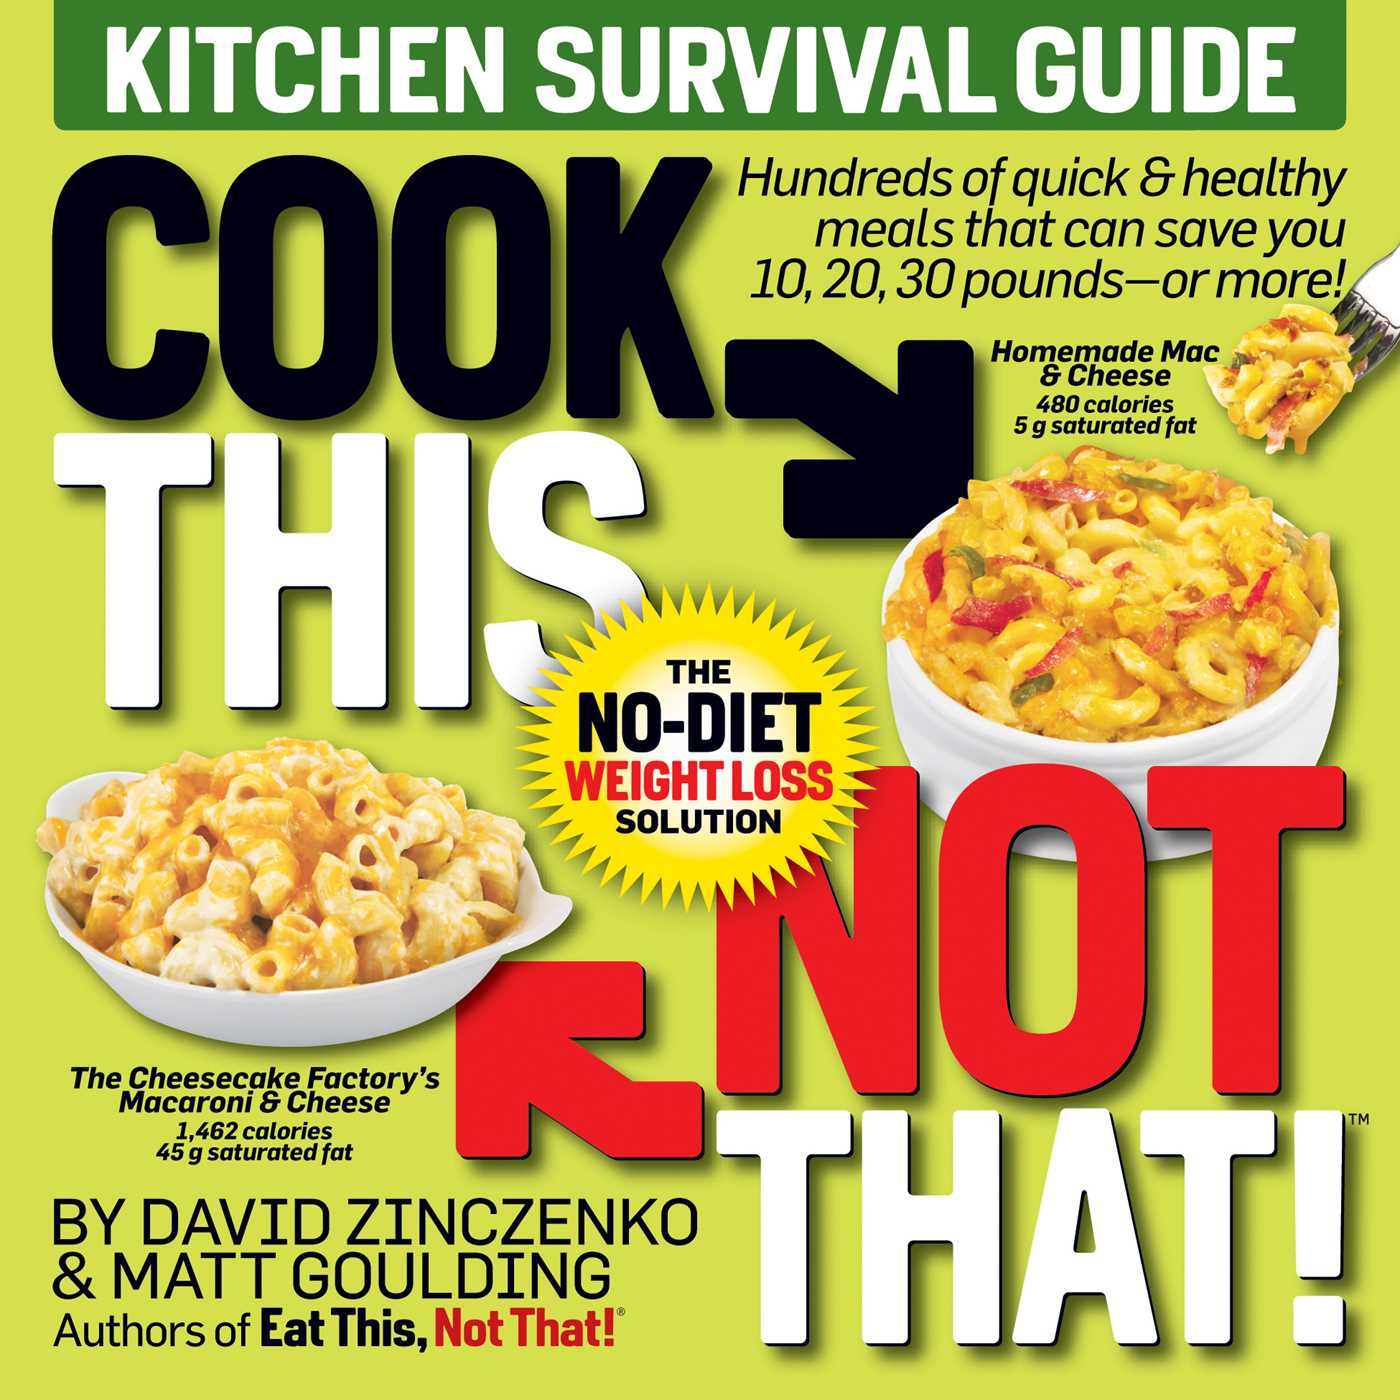 Cook this not that kitchen survival guide 9781101884423 hr